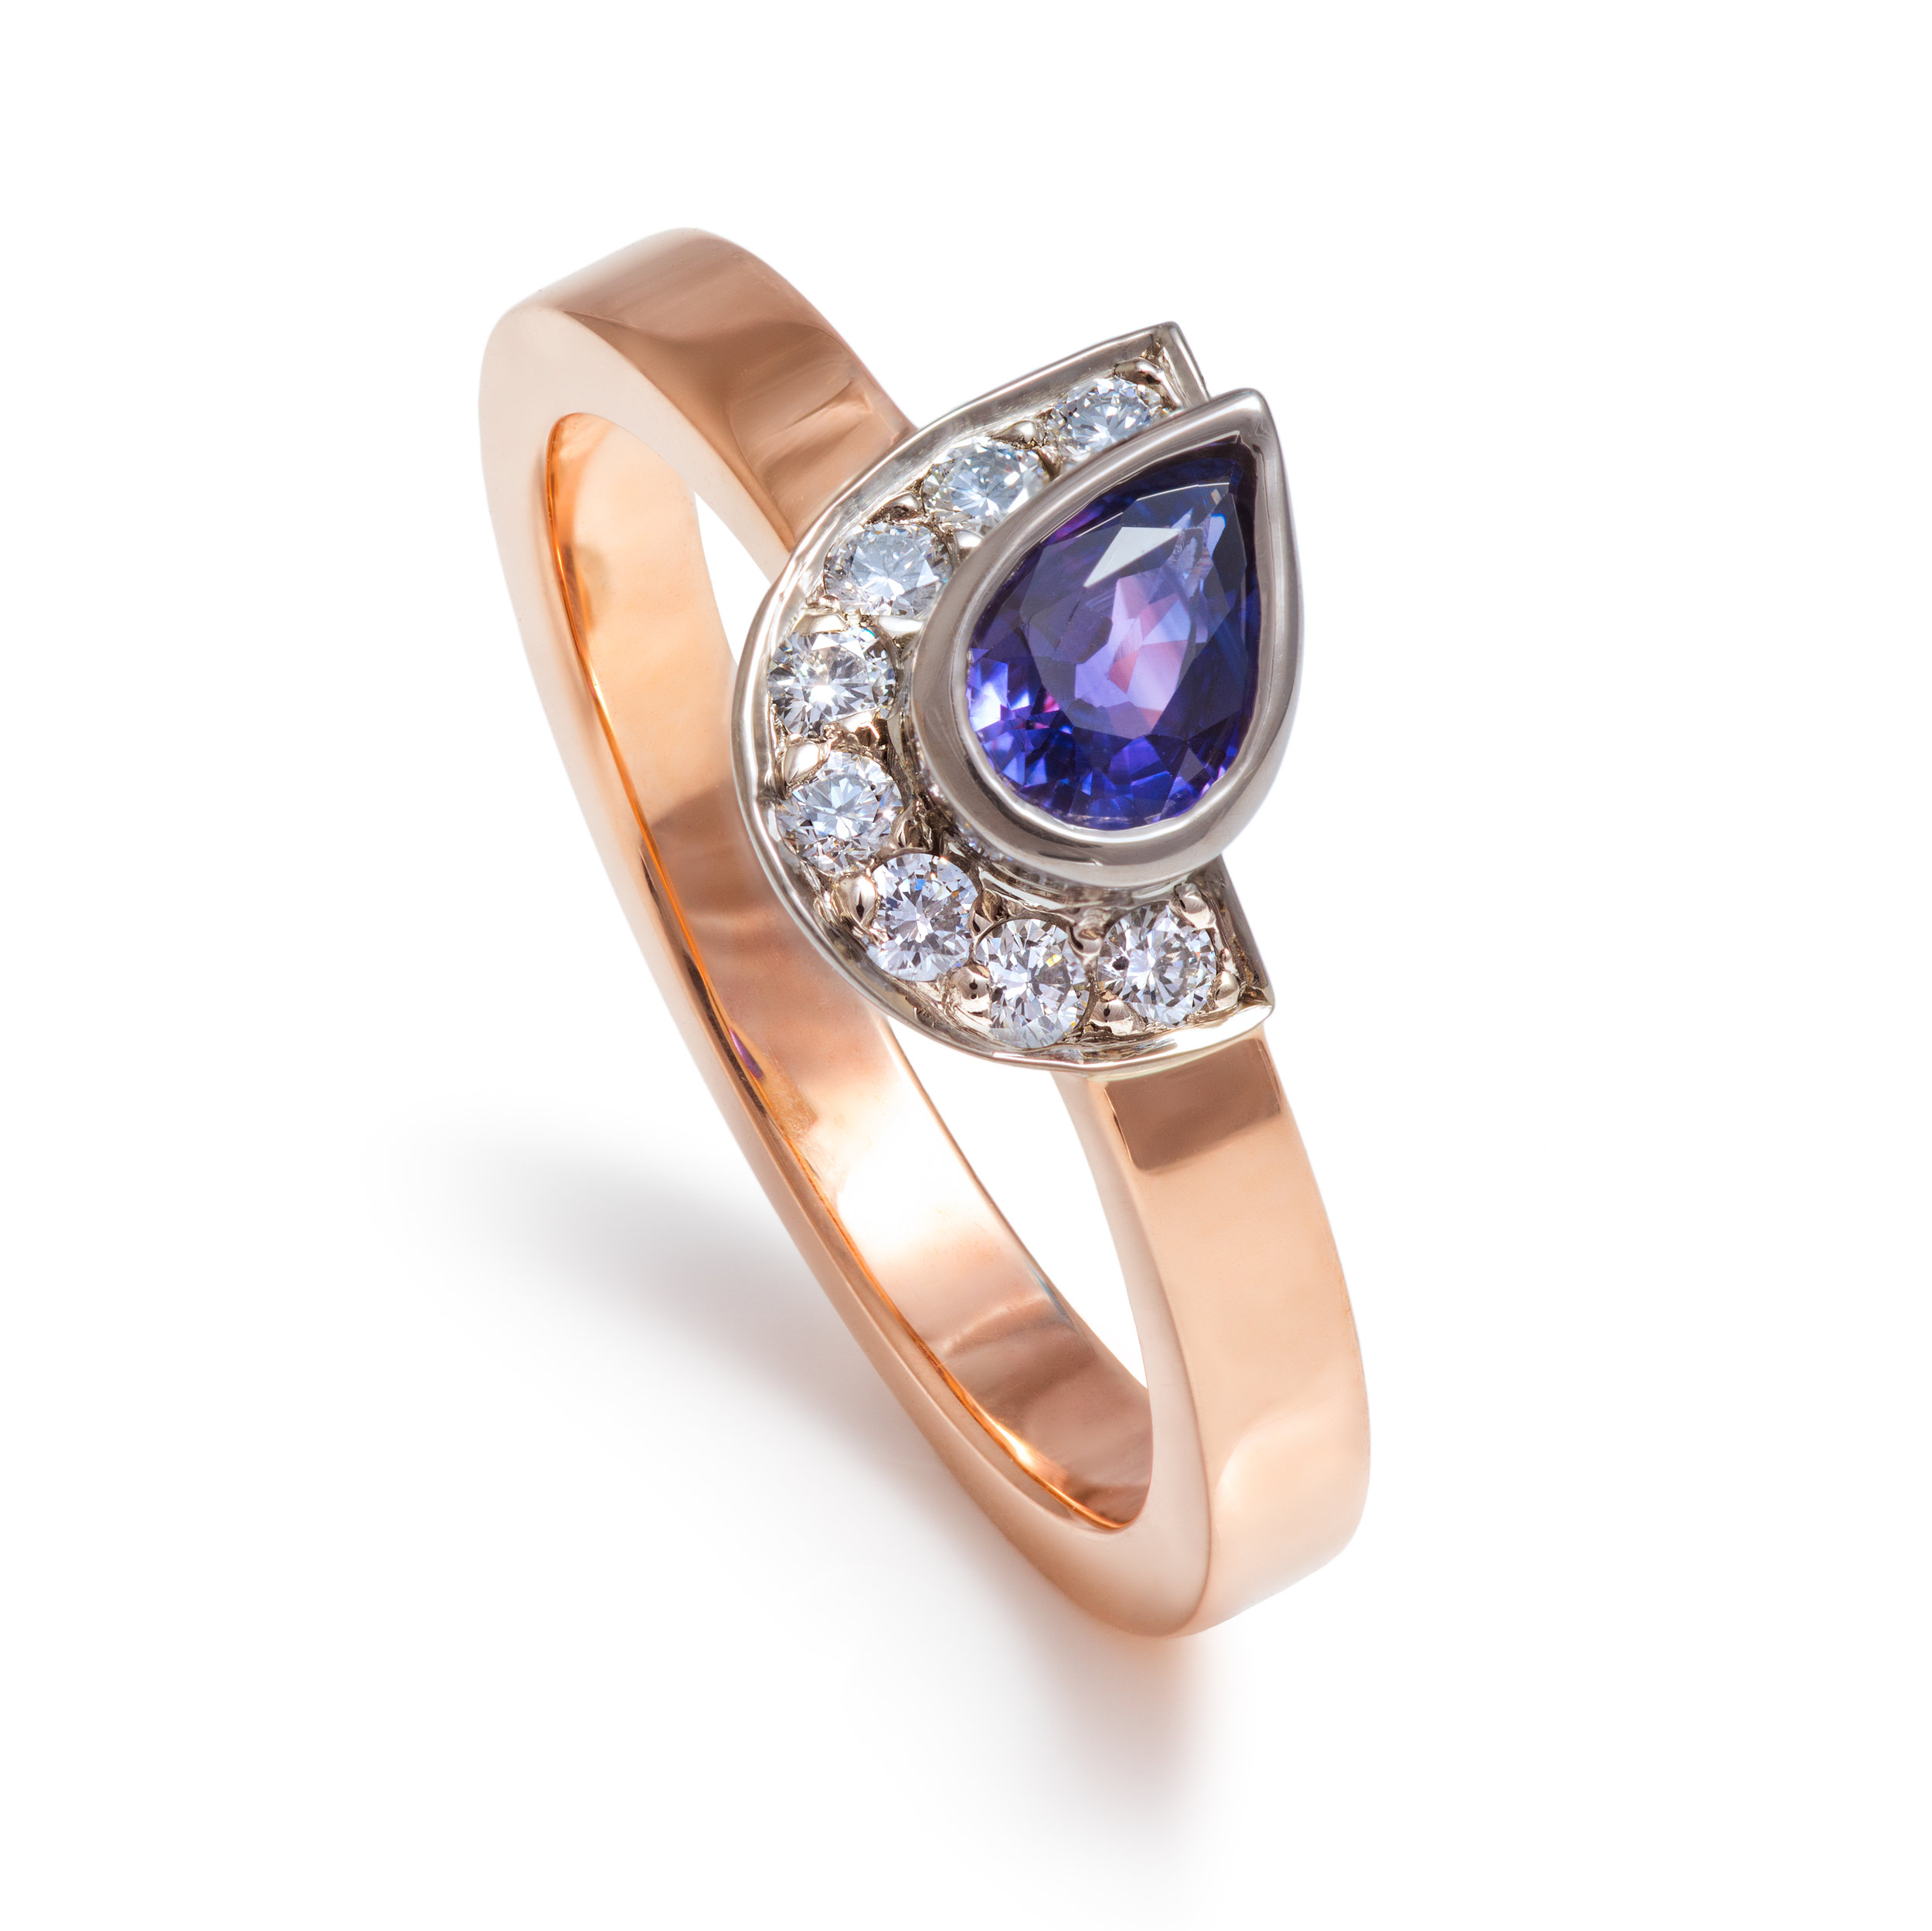 Bespoke 9ct rose gold, purple sapphire and diamond ring commission